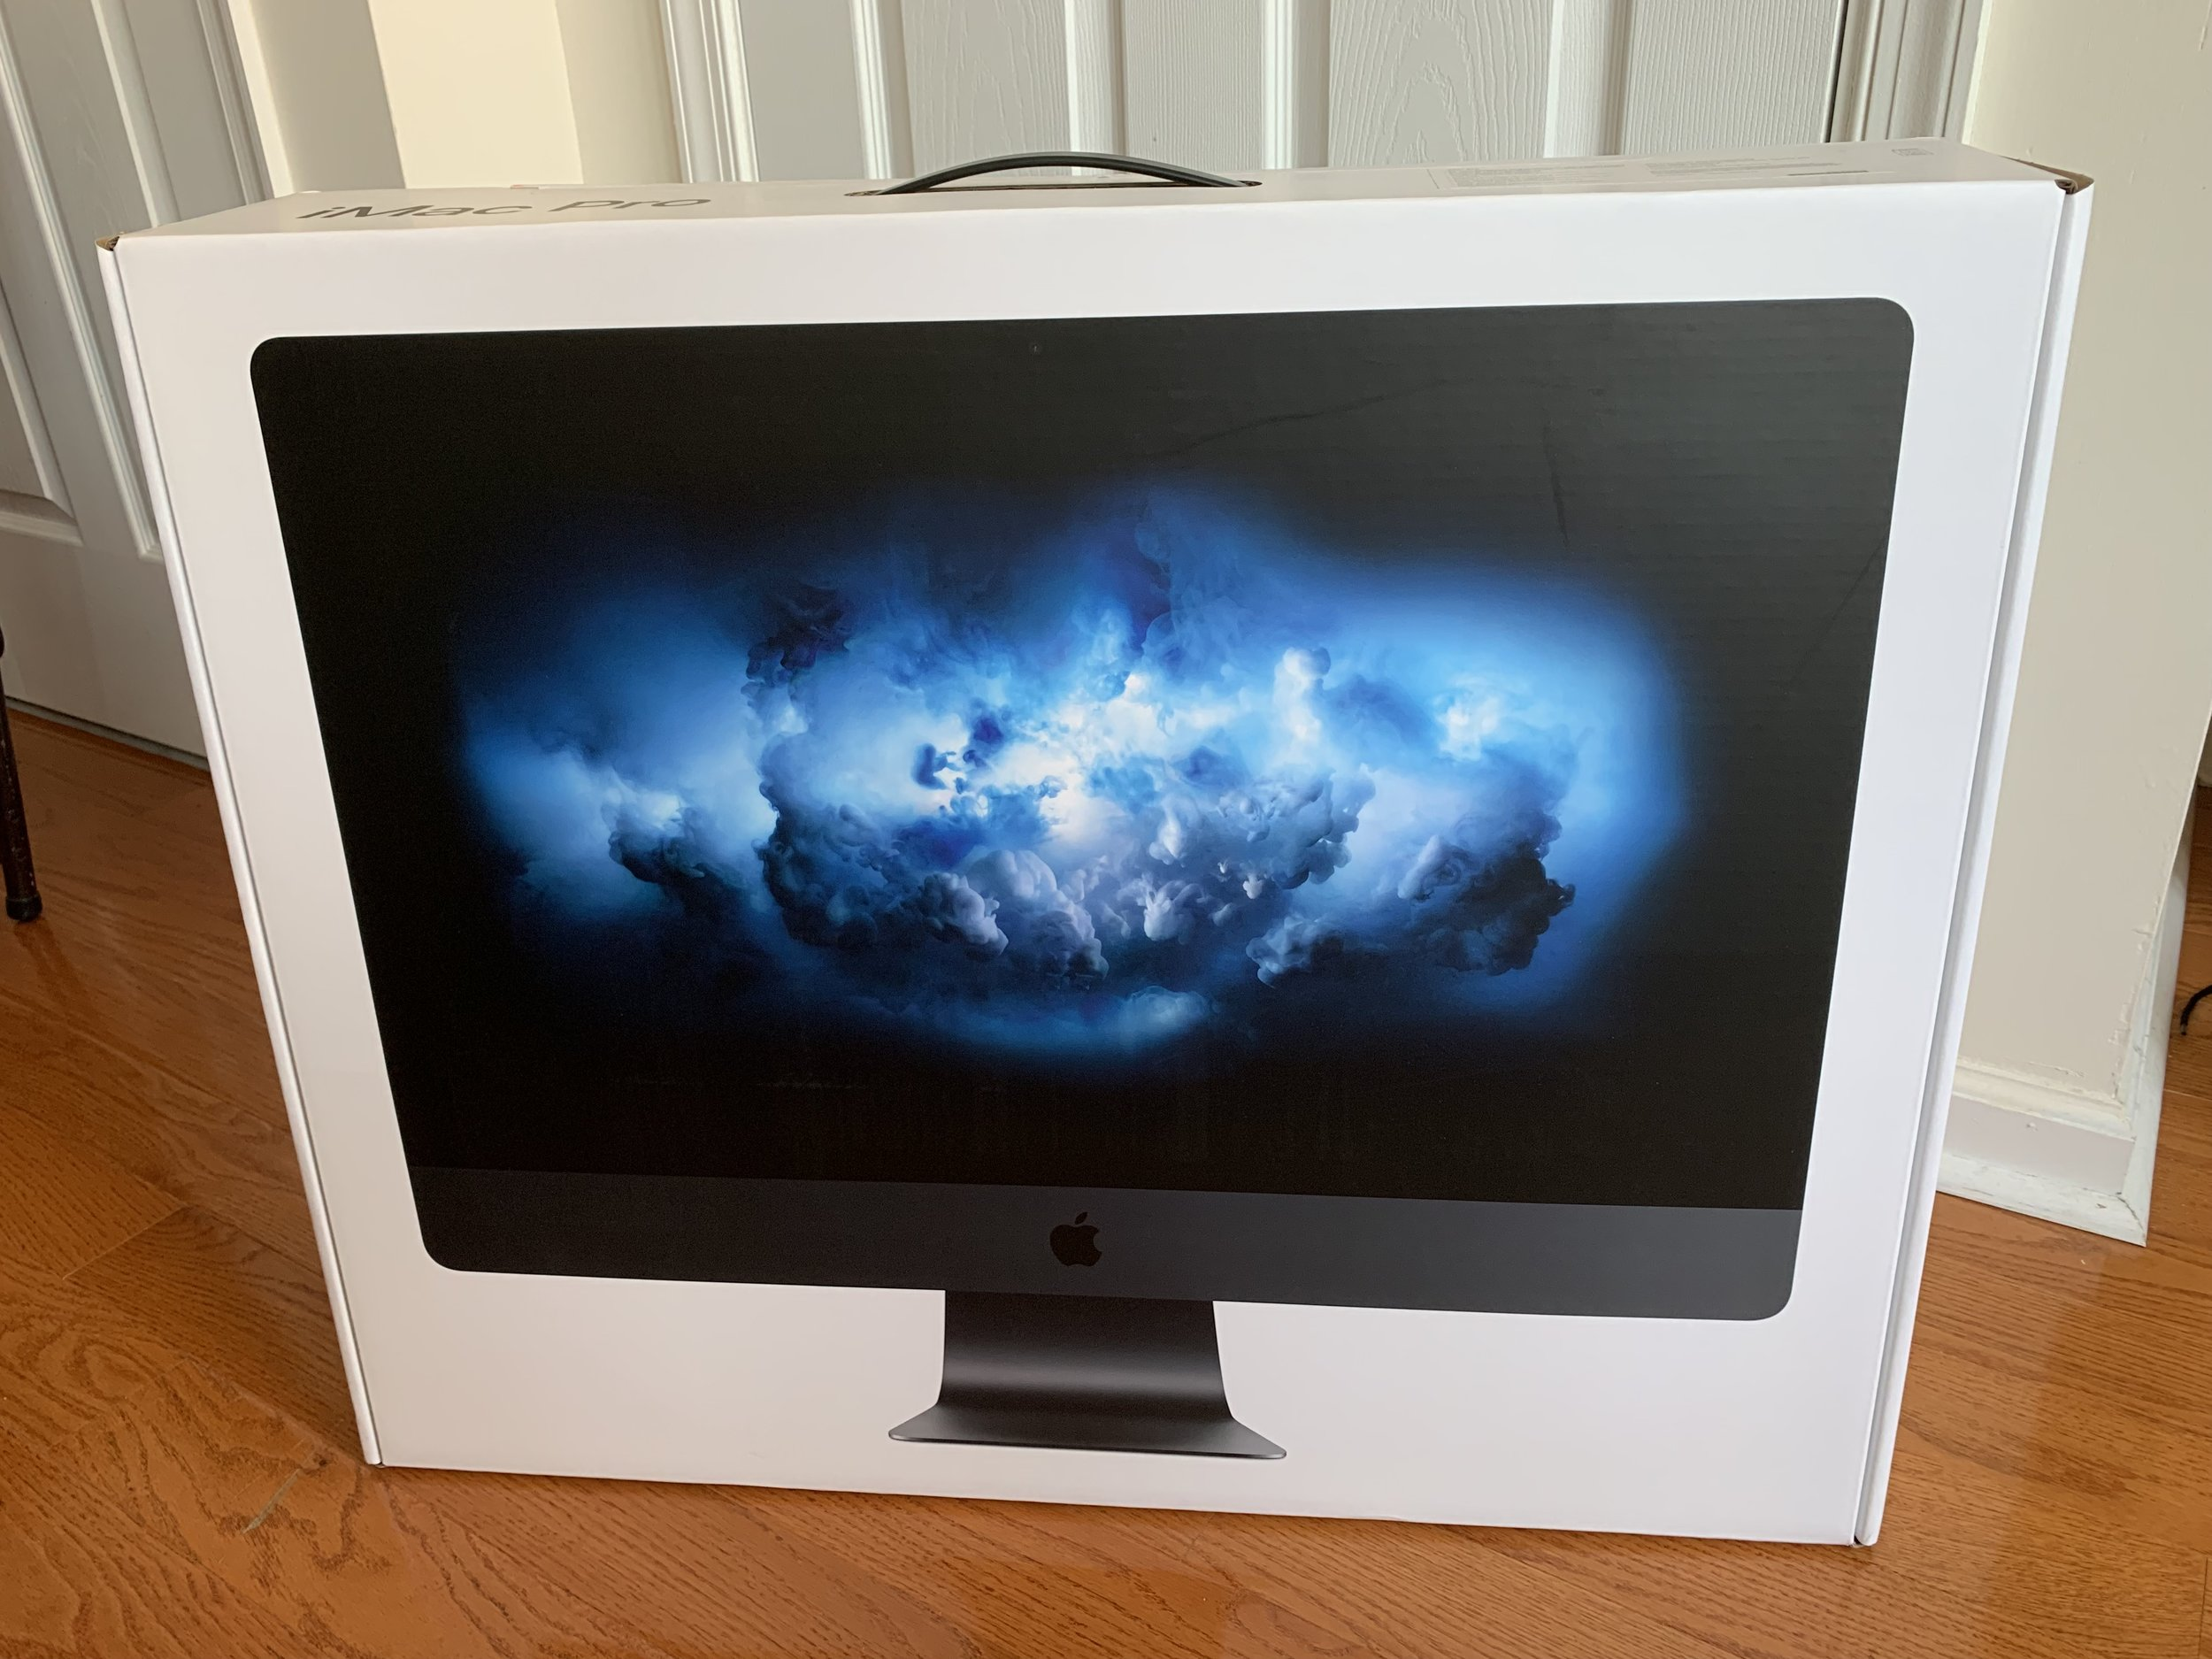 My new iMac Pro still in the box. I'll start setting it up after lunch.